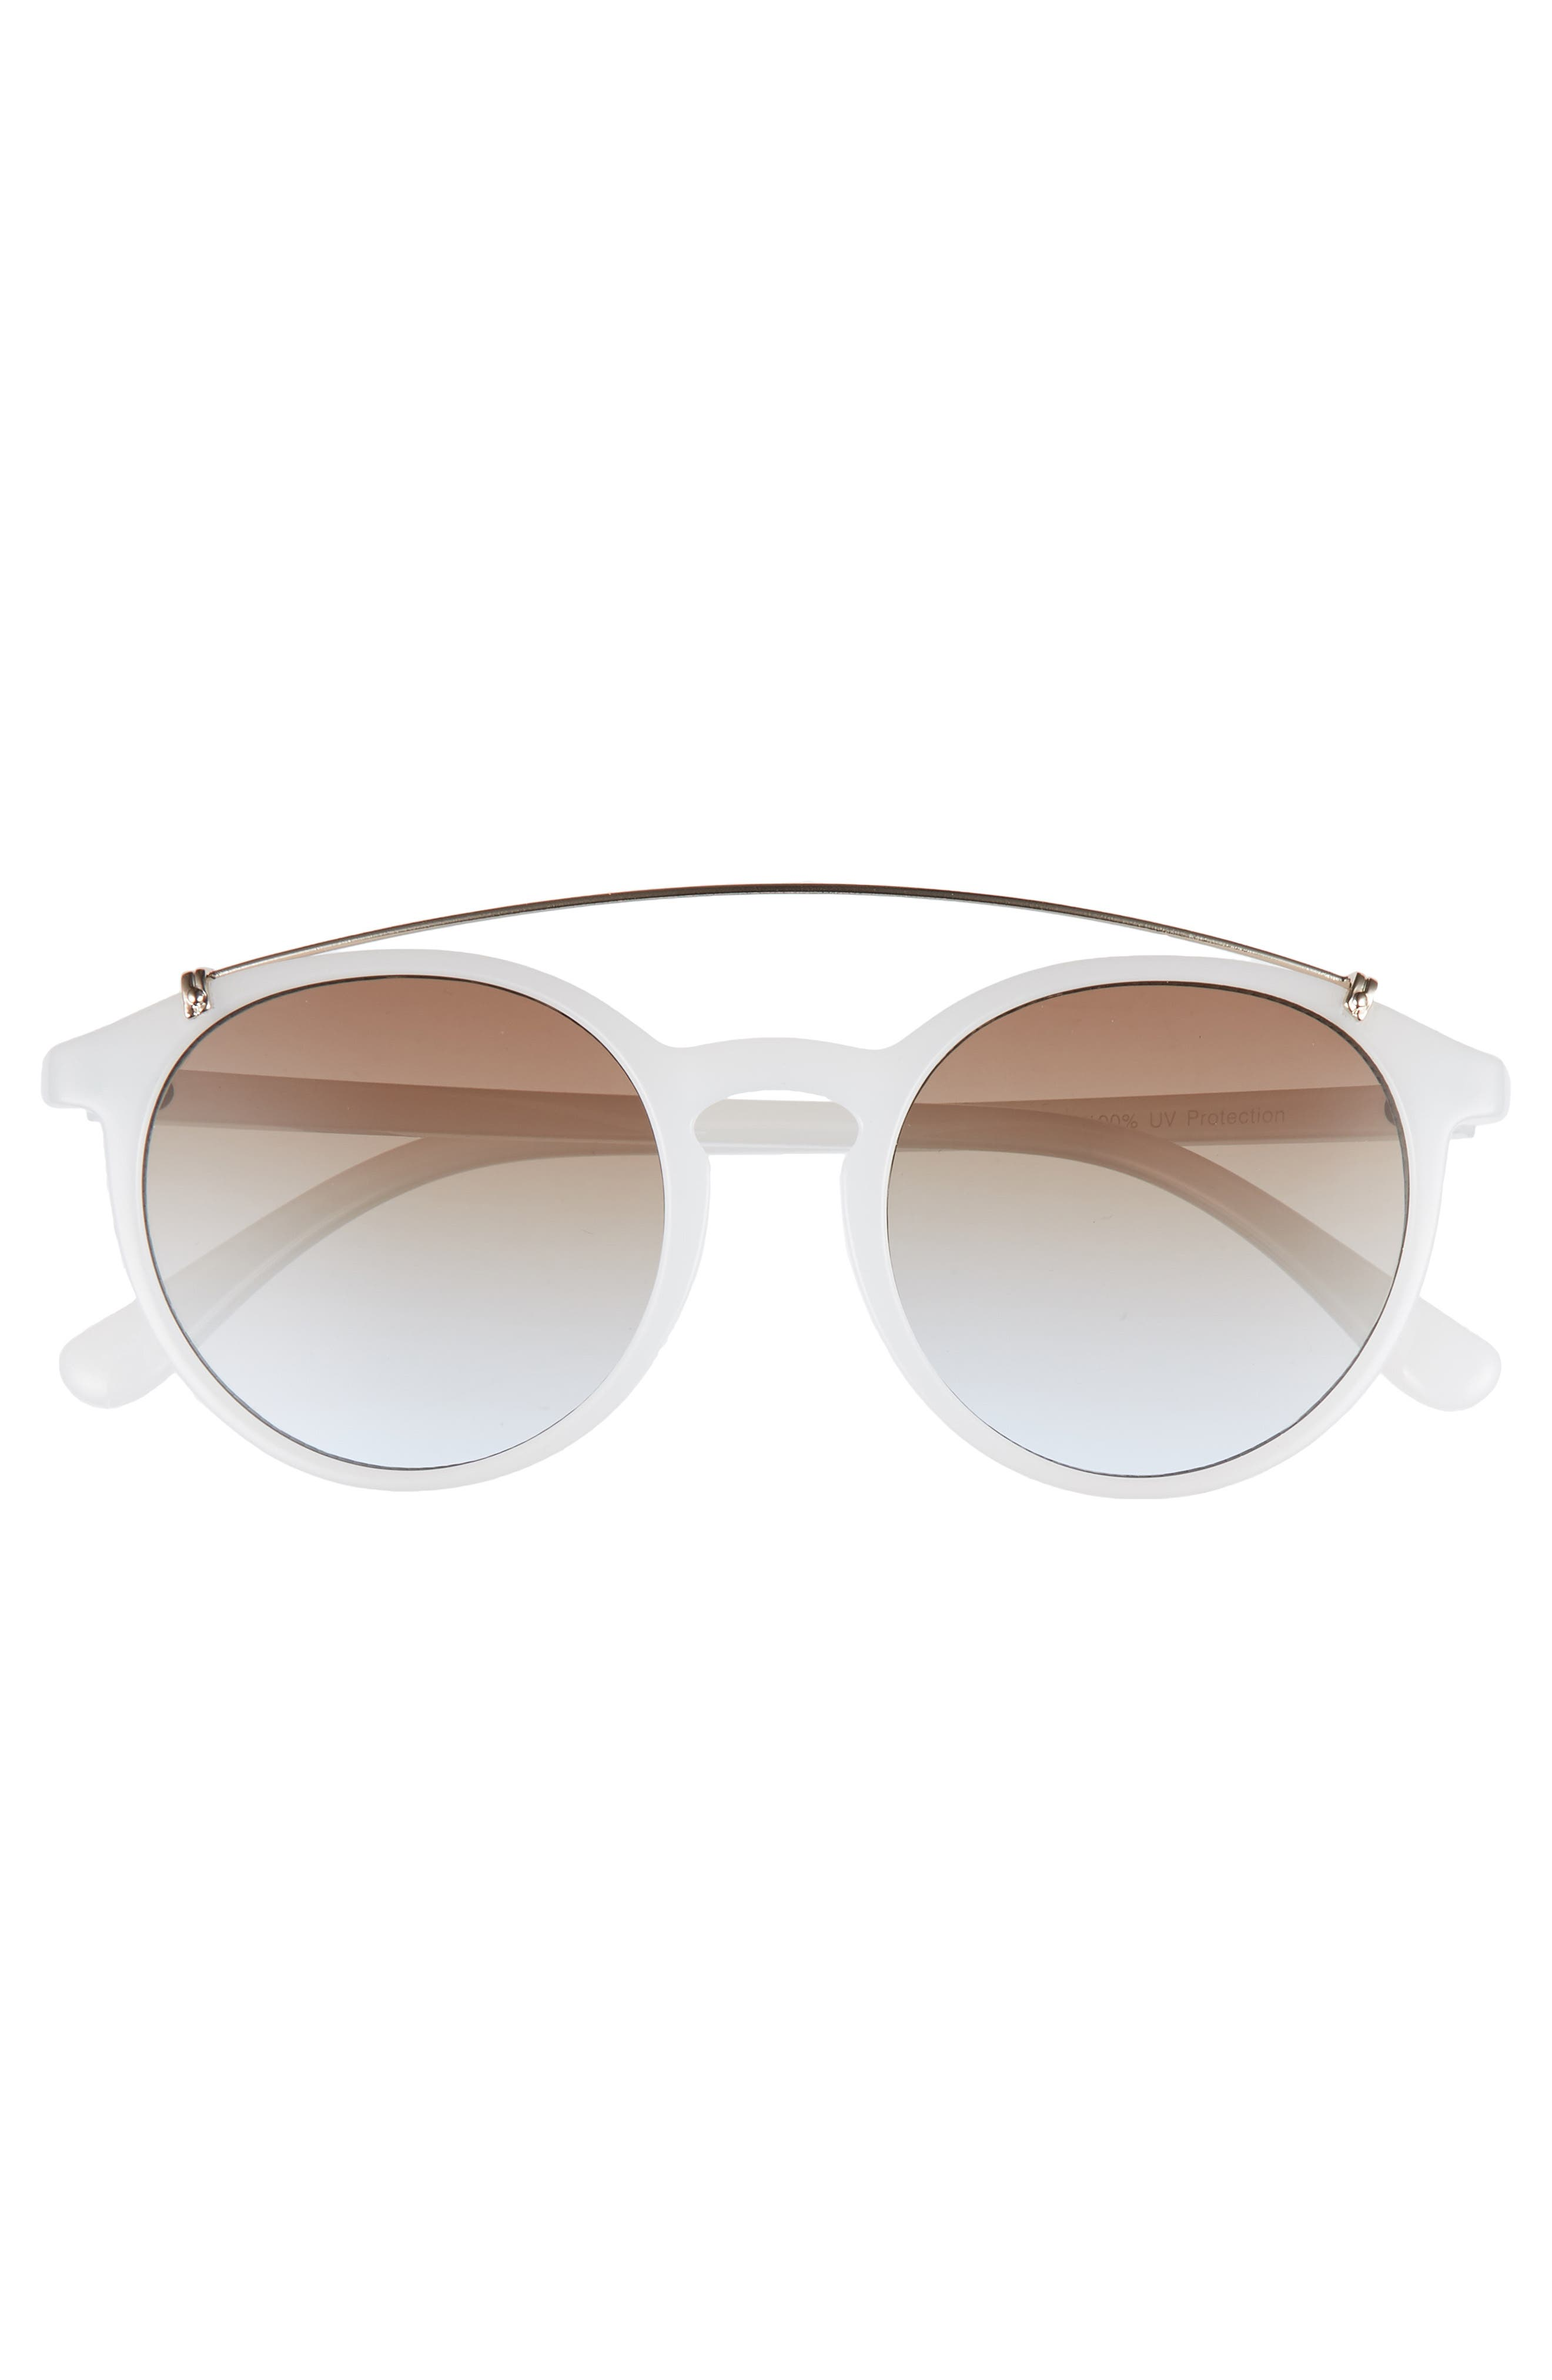 Round Aviator Sunglasses,                             Alternate thumbnail 3, color,                             100